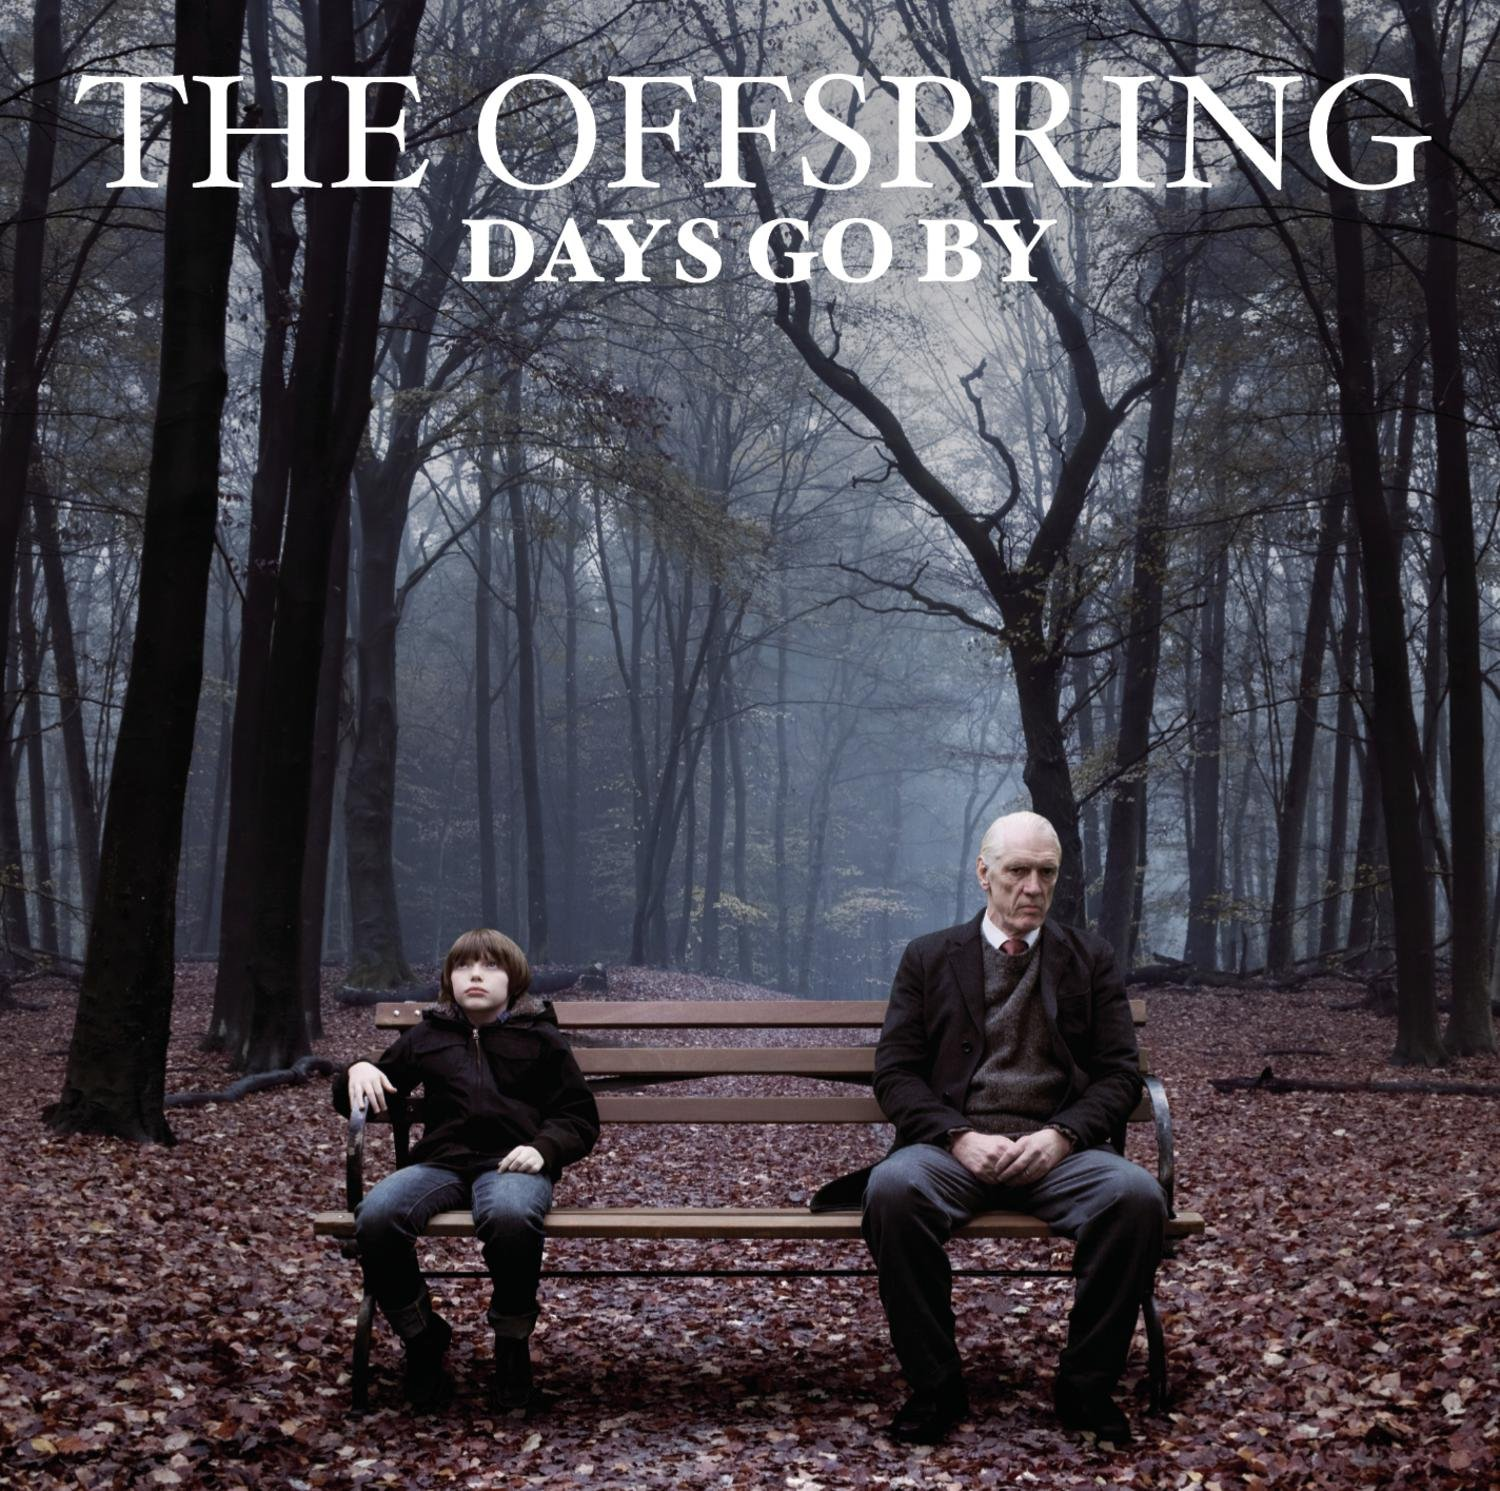 Days go by the offspring download album.